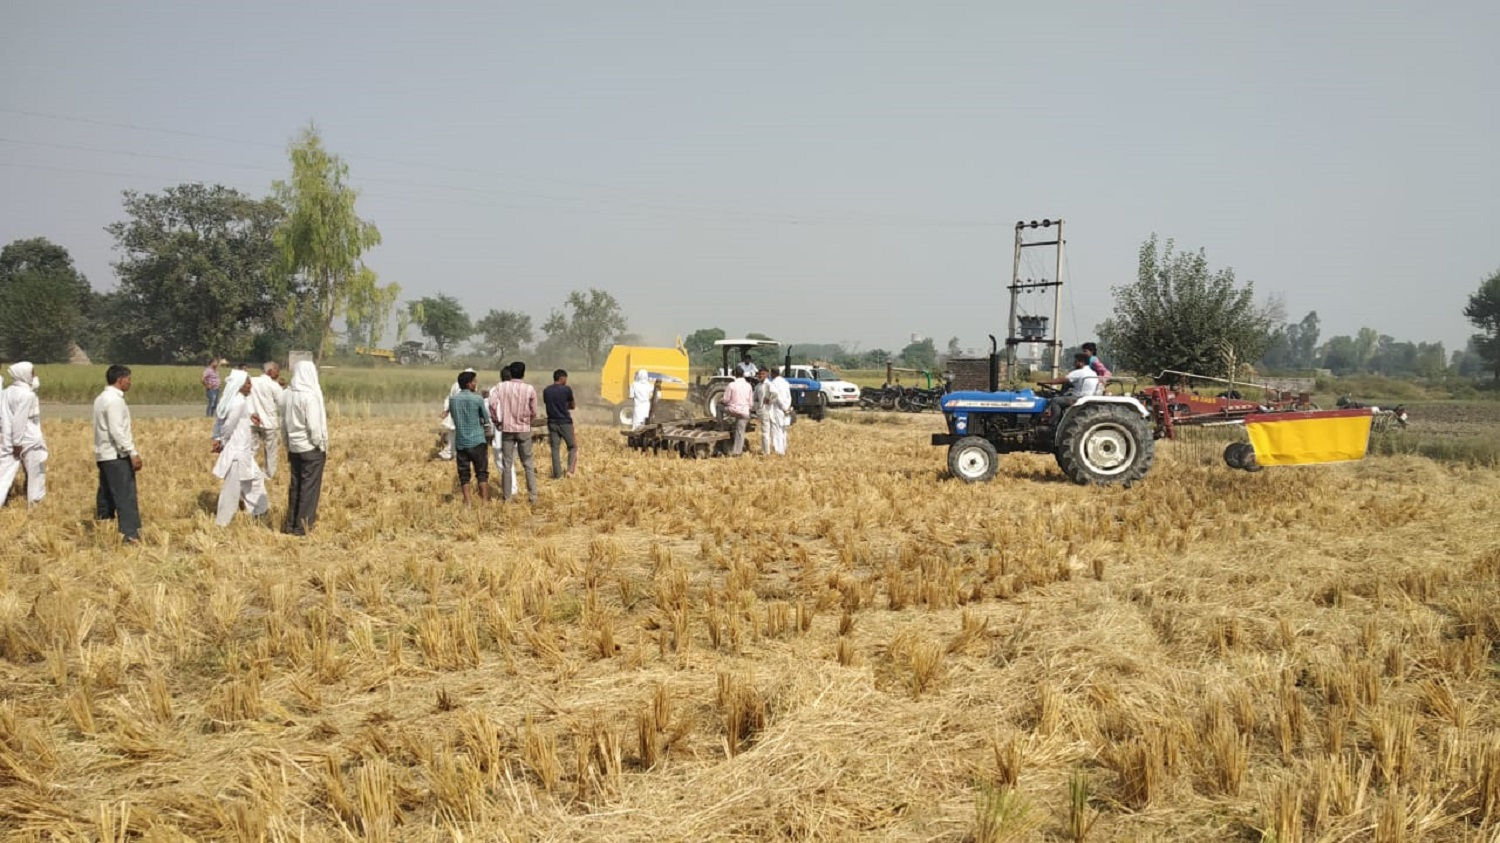 New Holland Agriculture, IARI join hands to fight crop stubble burning